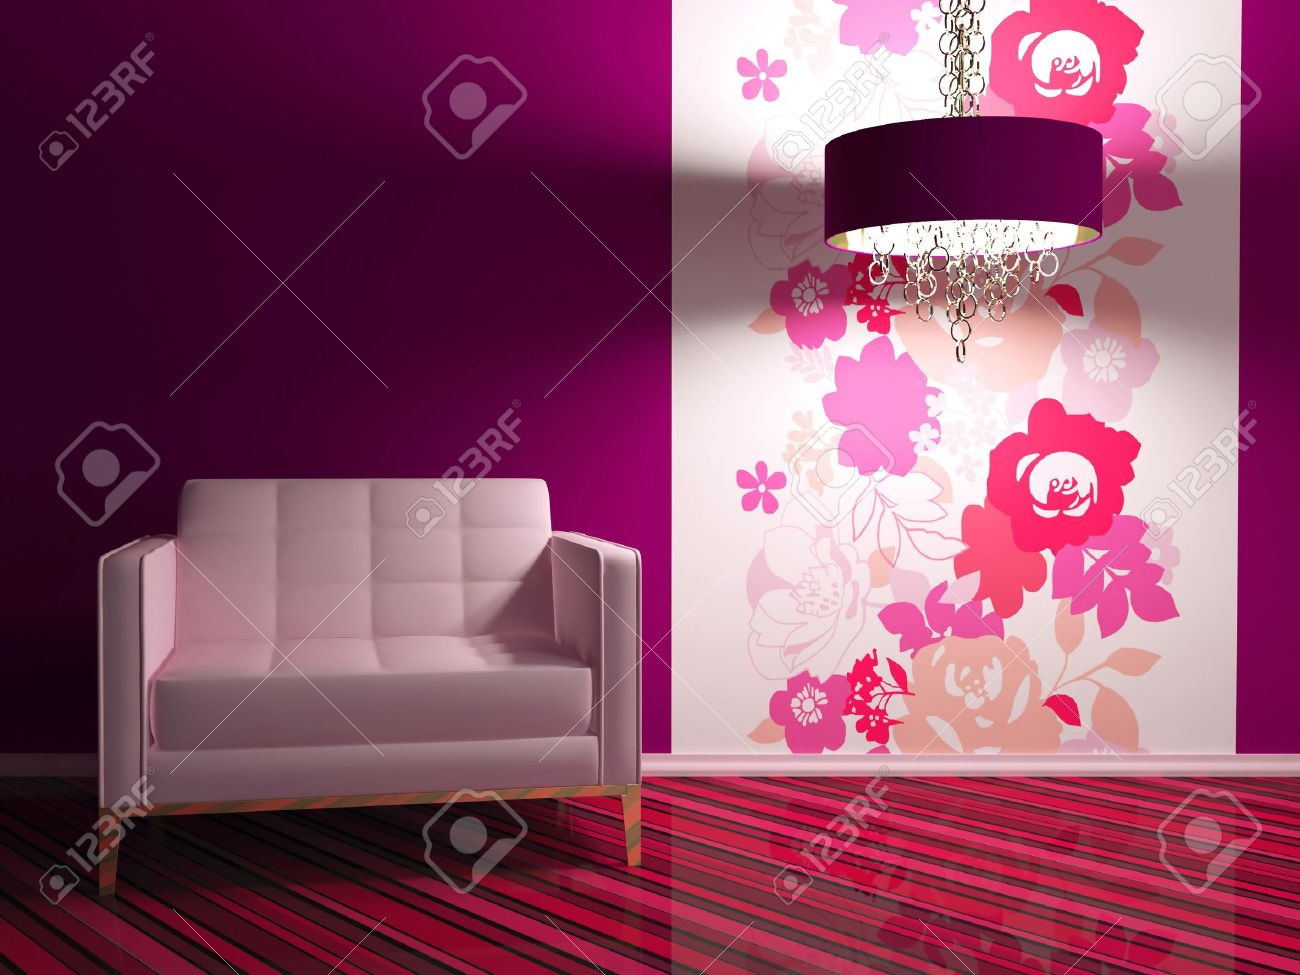 Bright Interior Design Of Modern Living Room With Big Pink